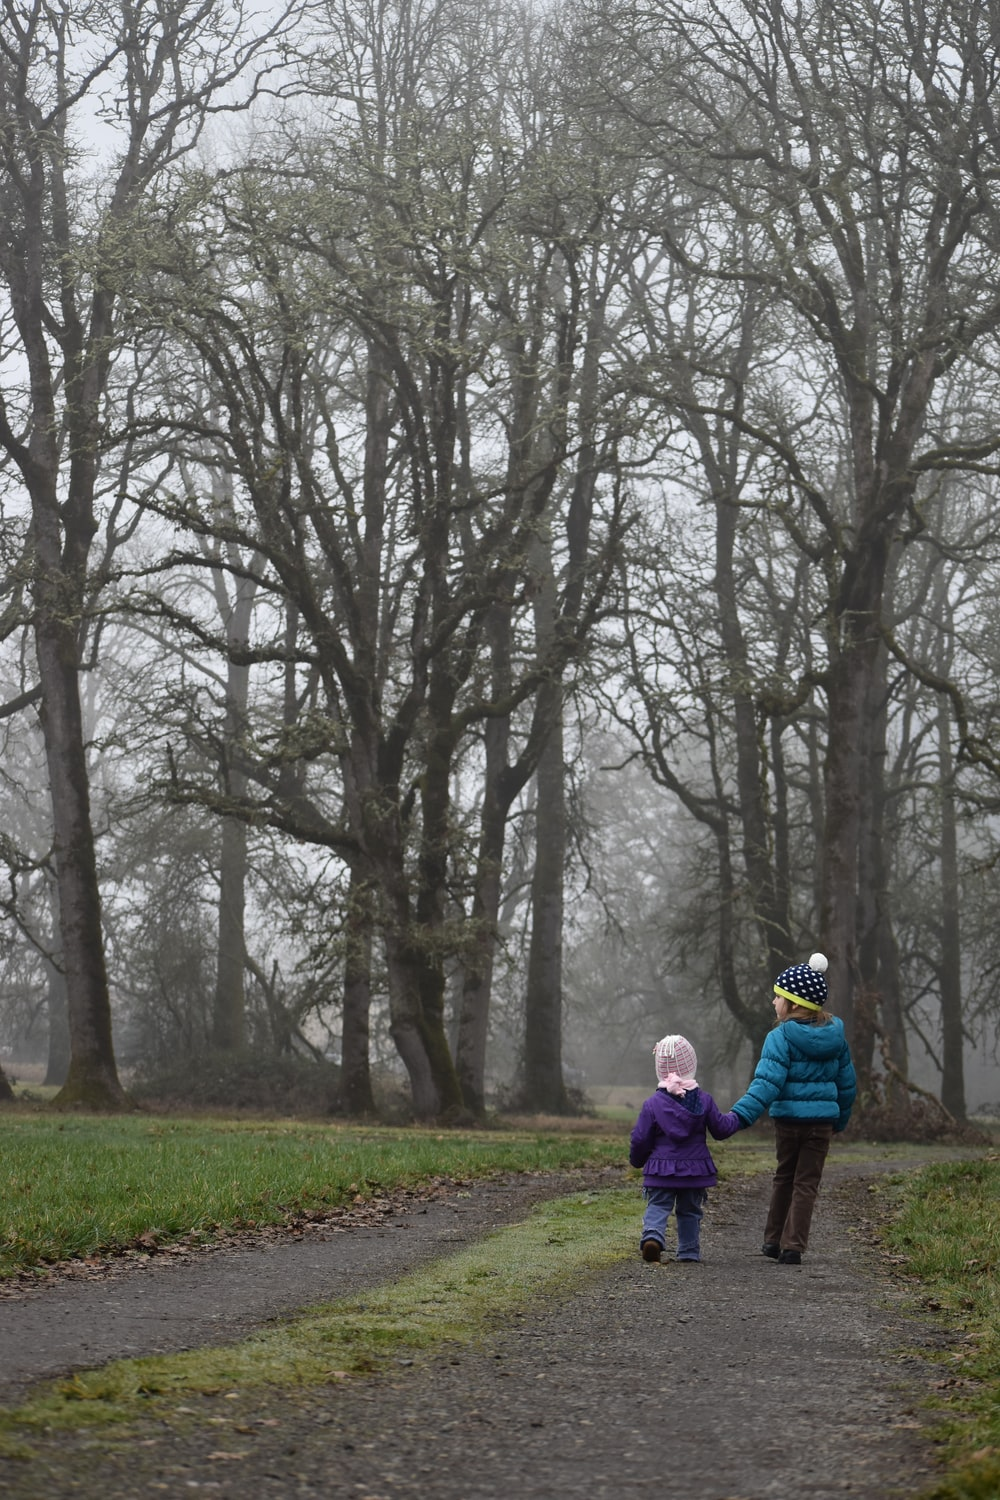 two children surrounded by withered trees